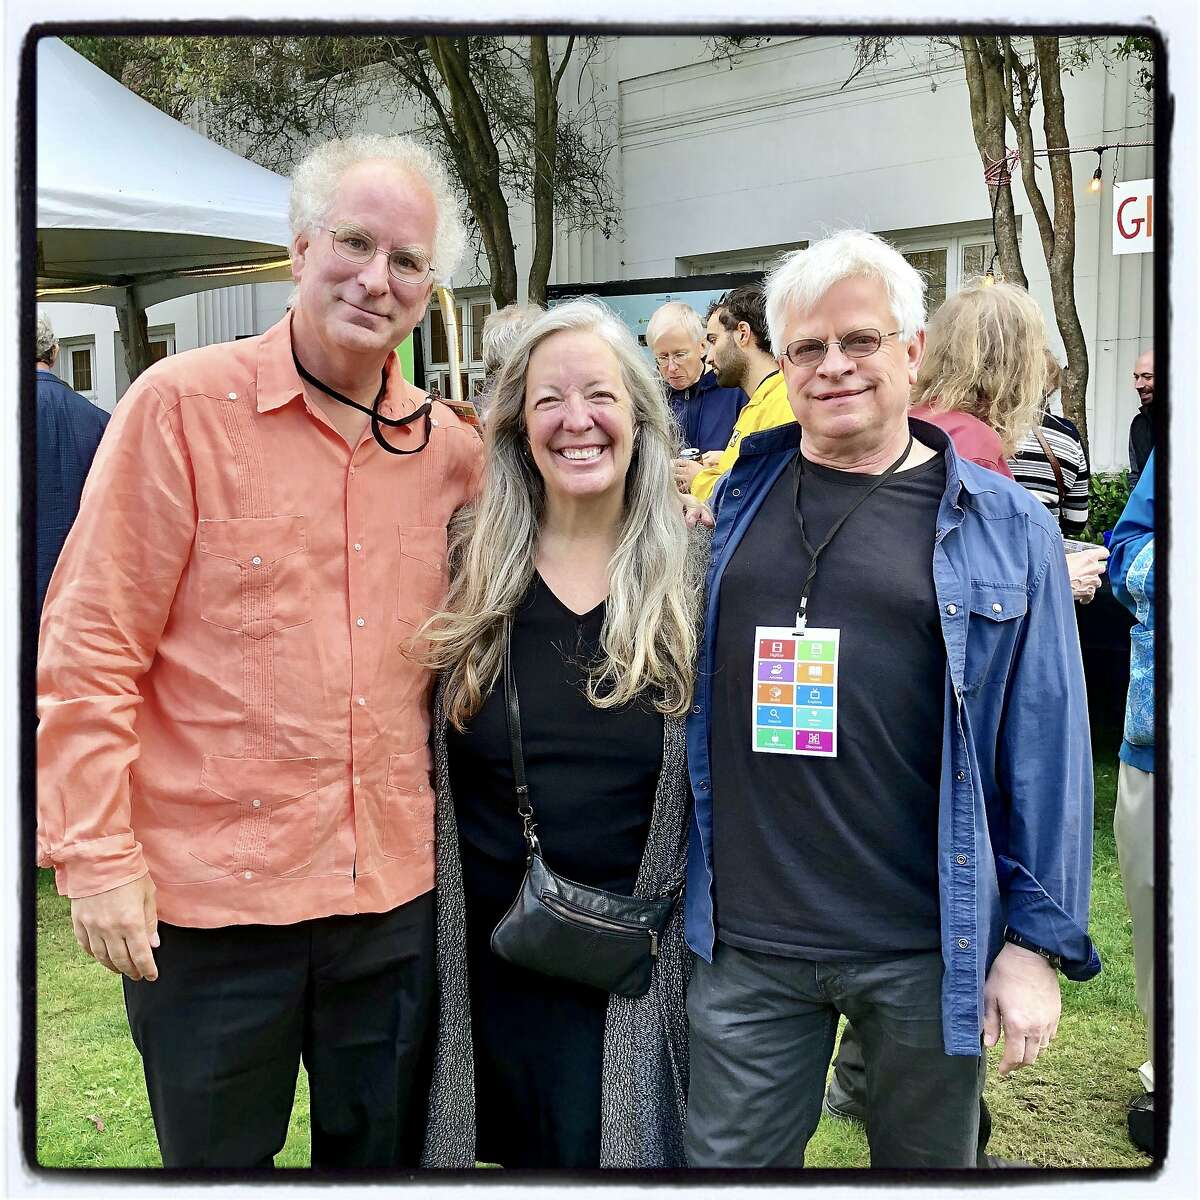 Internet Archive founder Brewster Kahle (left) with his wife, Mary Austin and UCSC Digital Media Professor Rick Prelinger. Oct. 3, 2018